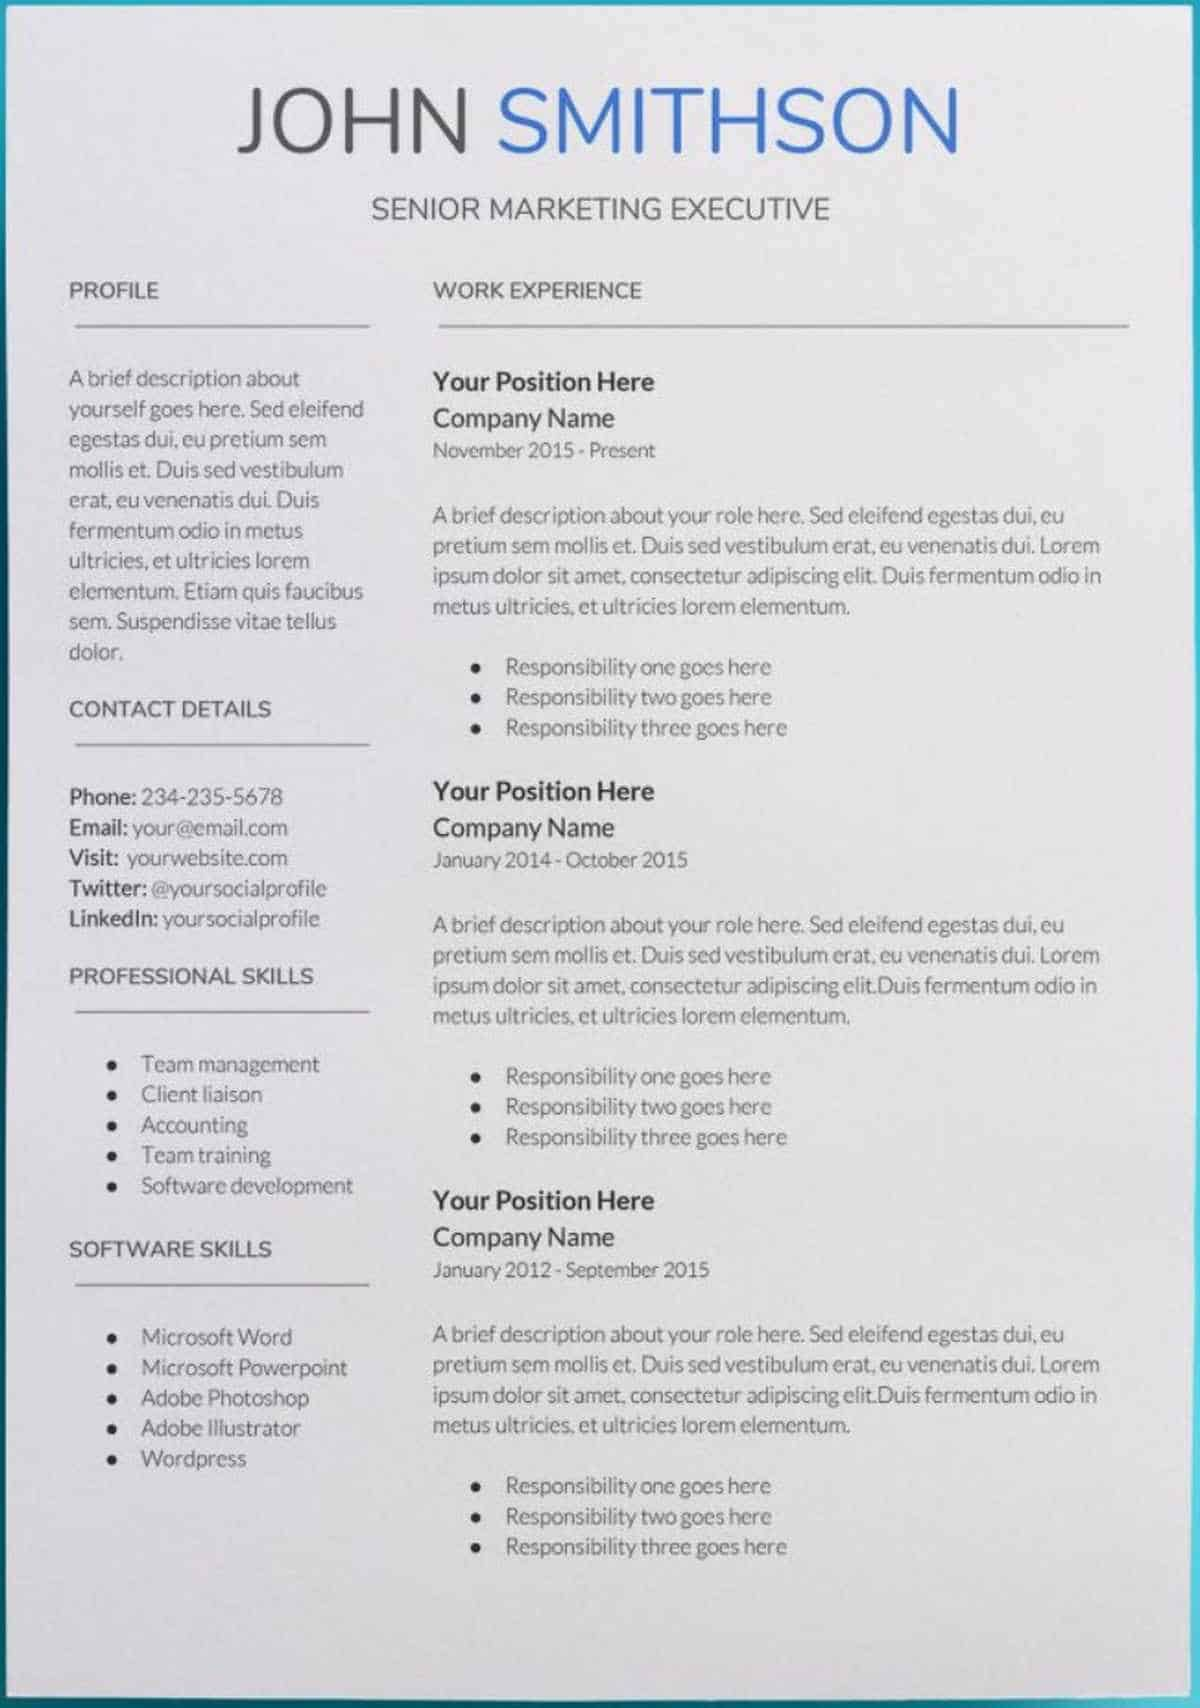 Sample Resume Templates Google Docs in 2020 Free resume